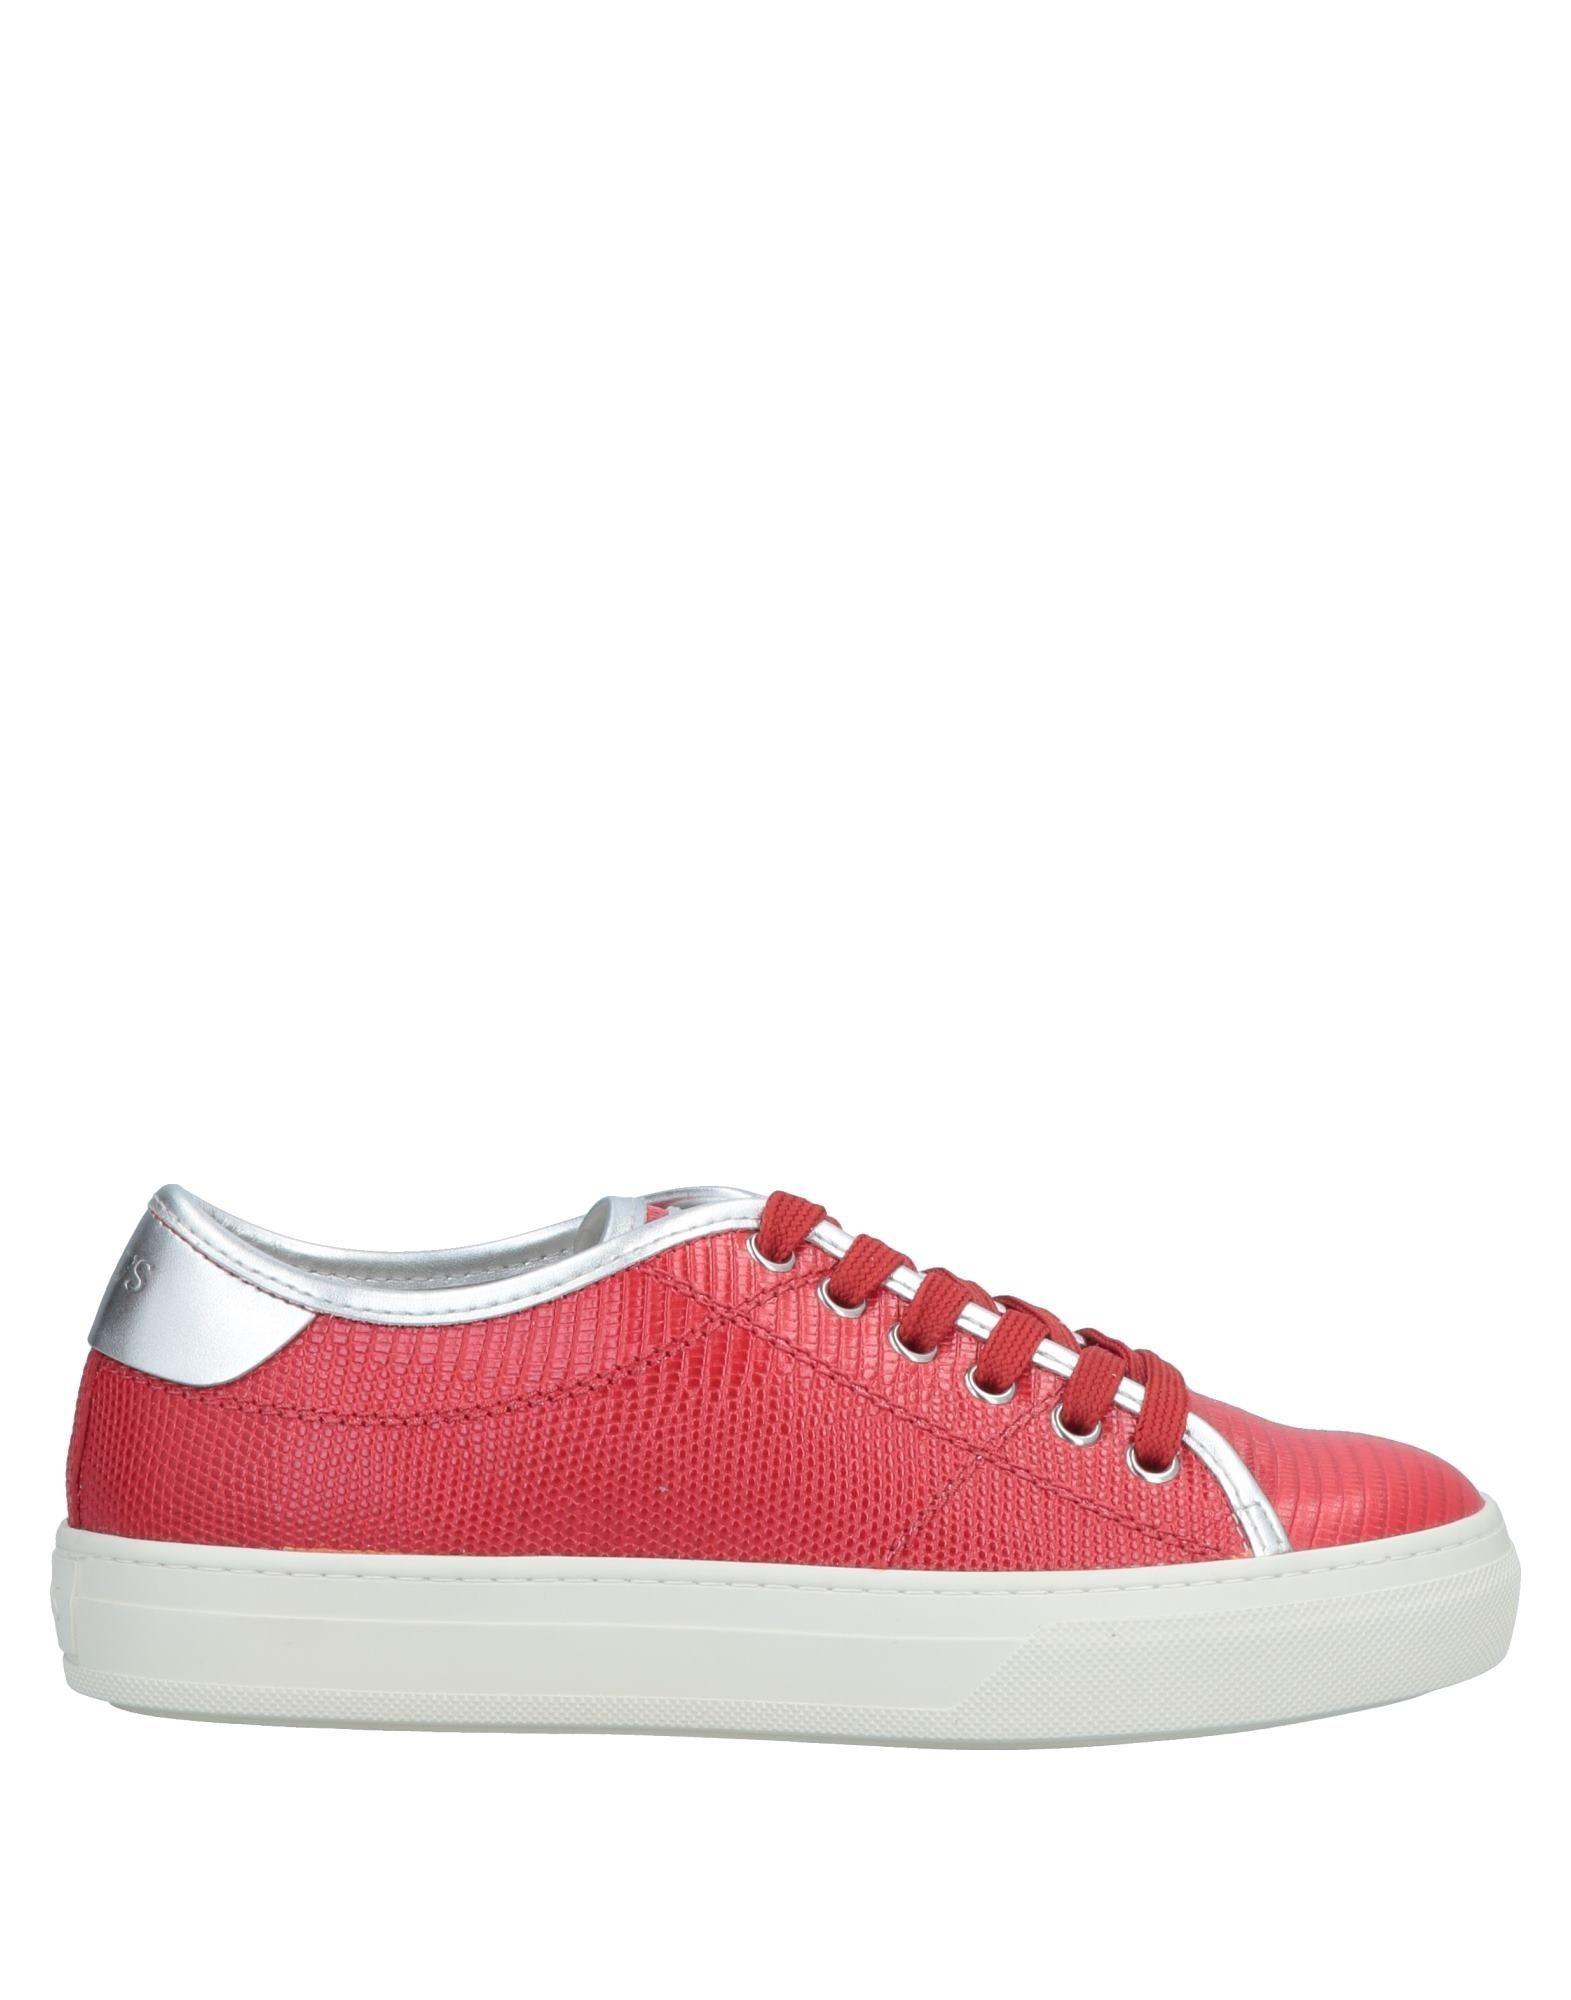 brand new 820ef e6d18 tods-Red-Low-tops-Sneakers.jpeg